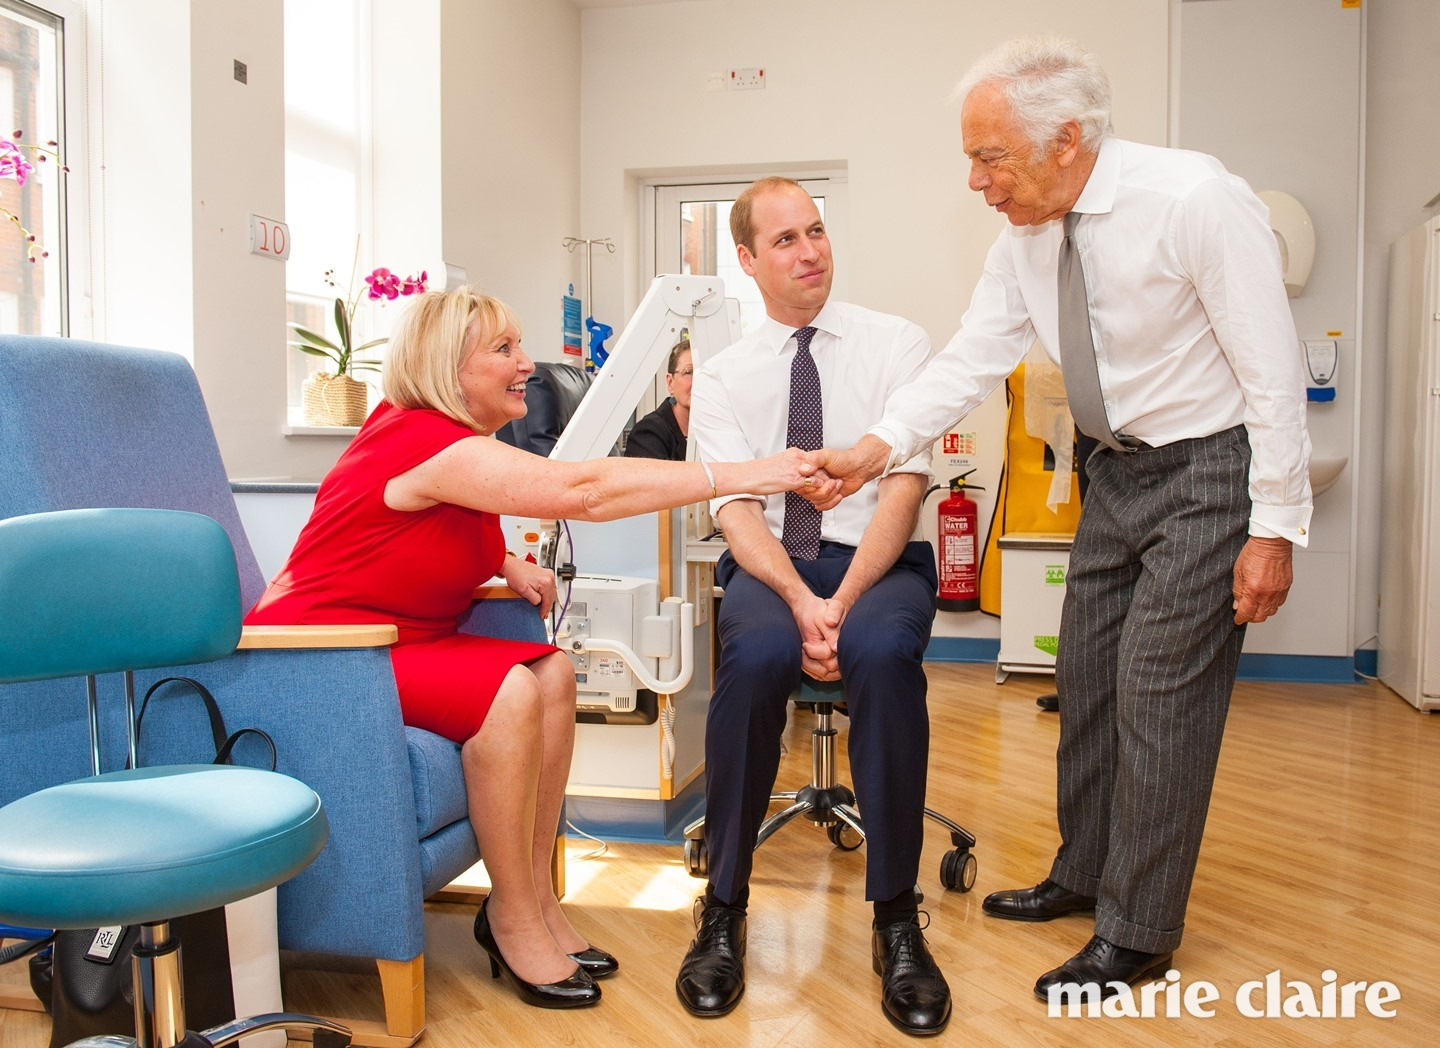 The Duke of Cambridge (centre) and Ralph Lauren (right) meet breast cancer patient Kathryn England during a visit to the Royal Marsden NHS Foundation Trust, in Chelsea, west London, as he marks the opening of the hospital's new centre for breast cancer research named after the fashion designer.